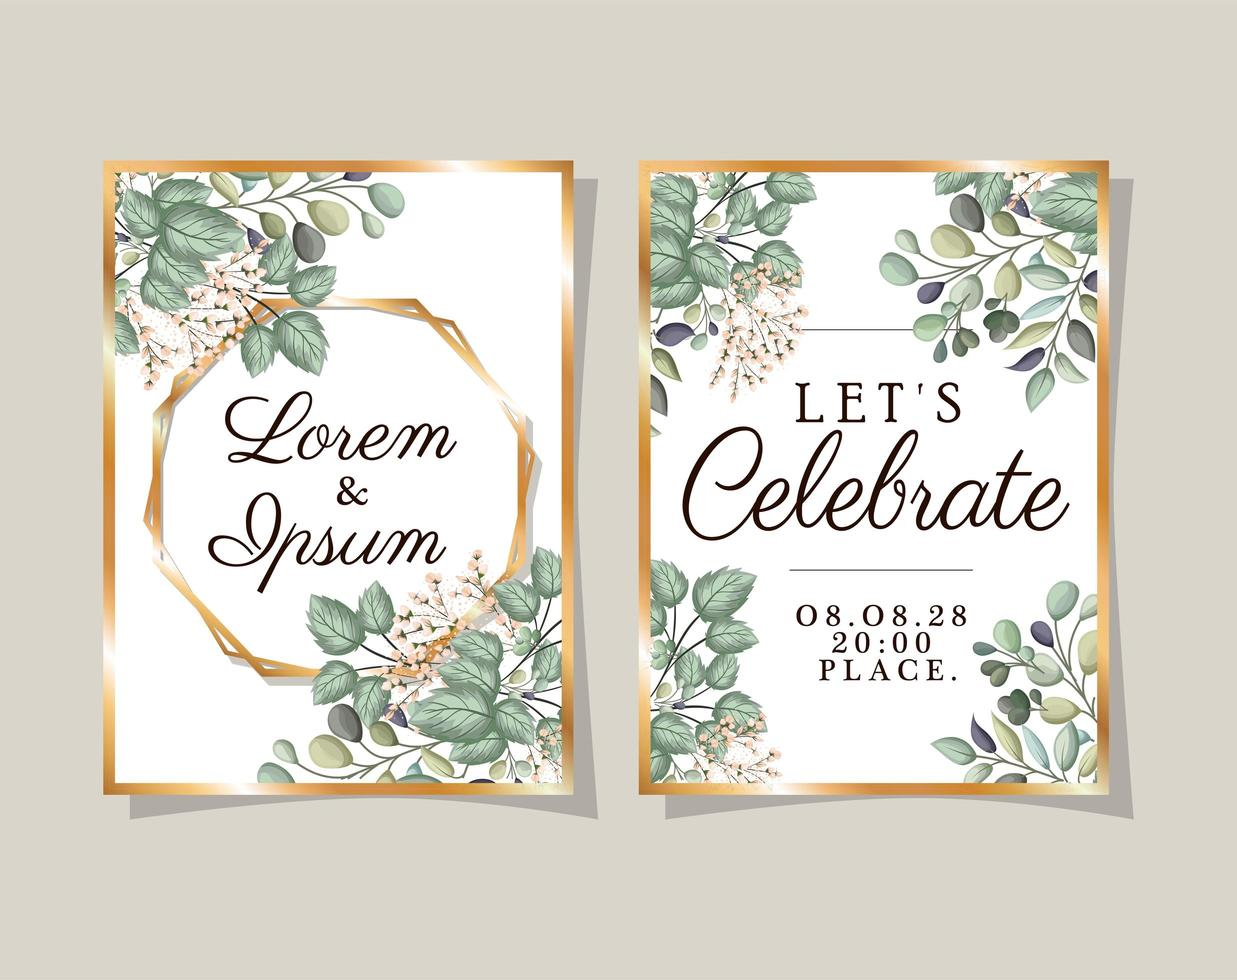 Two wedding invitations with gold frames flowers and leaves vector design